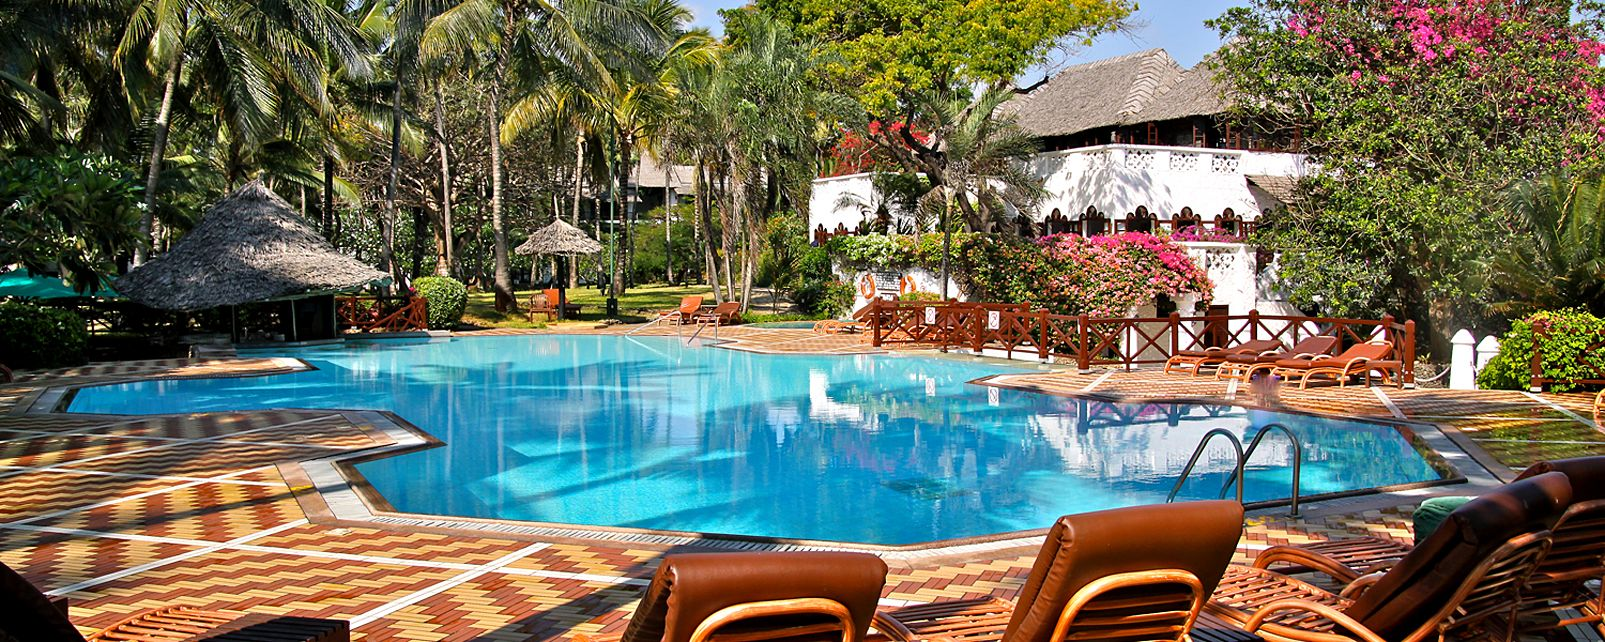 Hotel Serena Beach Hotel and Spa